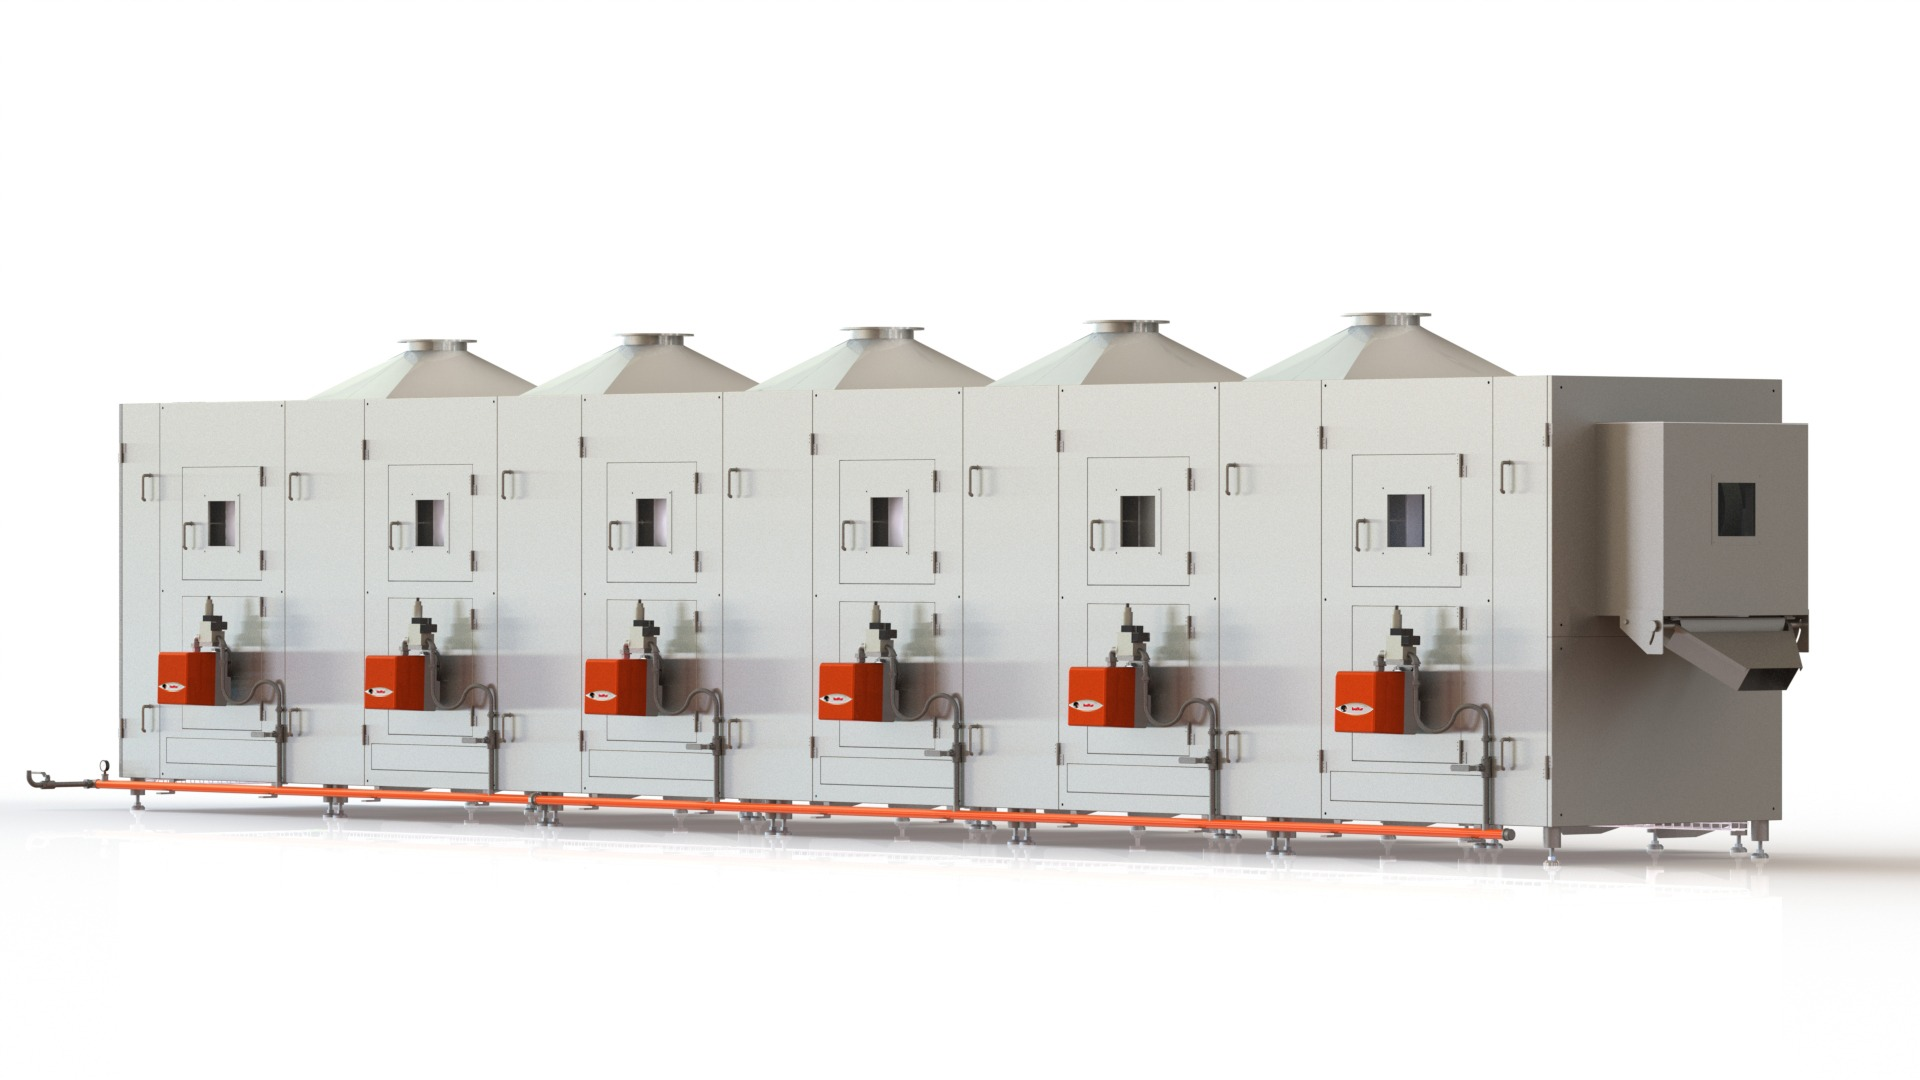 5c. CPR-600 COATED NUTS ROASTER (Latest)